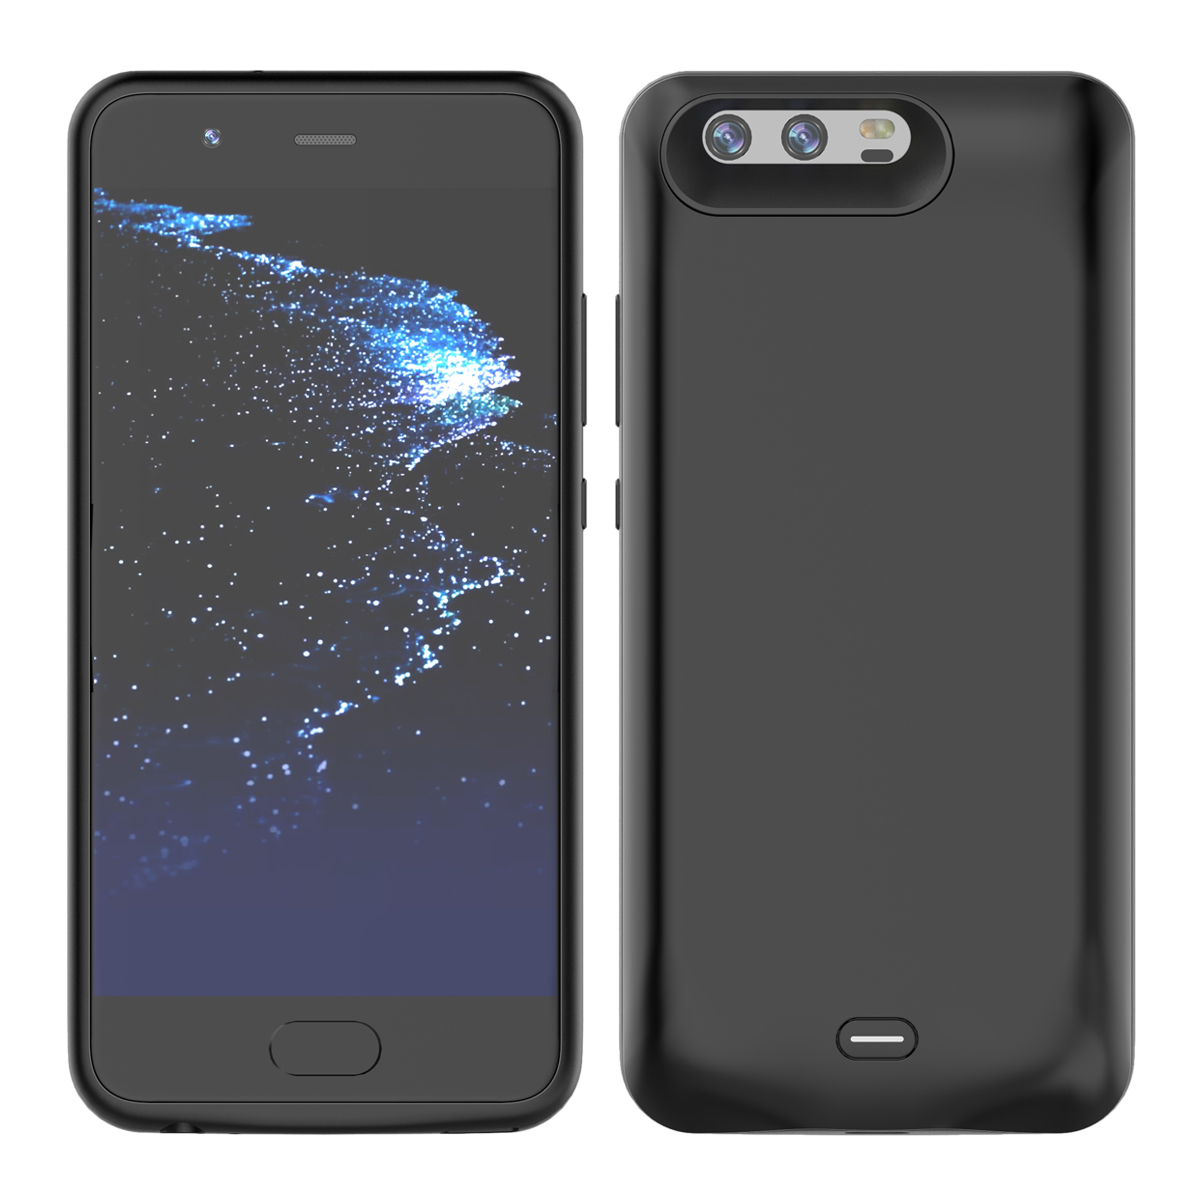 <font><b>Battery</b></font> Charger <font><b>Case</b></font> For <font><b>Huawei</b></font> <font><b>P10</b></font> Plus 5500mAh Power Bank Charging <font><b>Case</b></font> Powerbank Charger <font><b>Case</b></font> For <font><b>Huawei</b></font> <font><b>P10</b></font> Plus Cover 5.5'' image